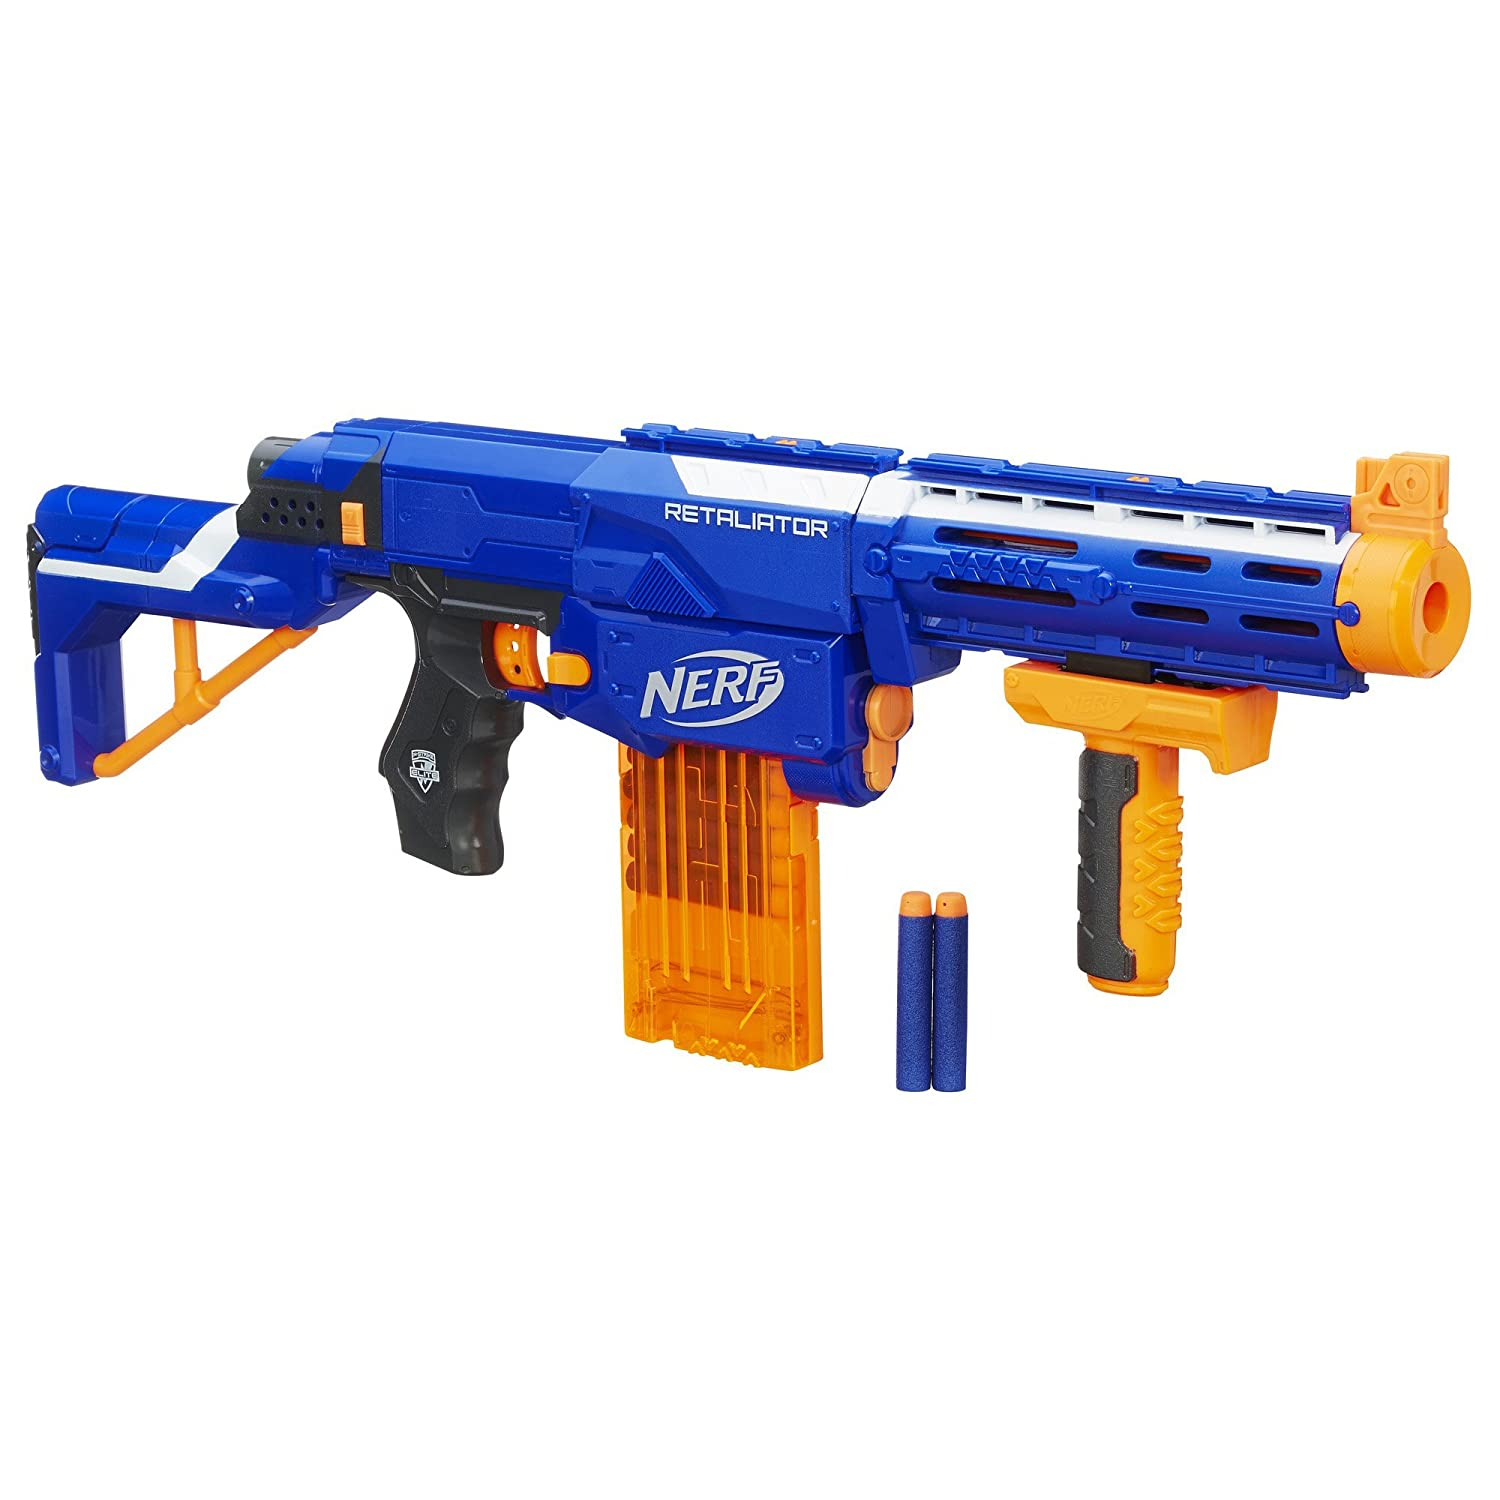 Amazon Nerf B0083 N Strike Elite 4 in 1 Retaliator Blaster 2 7 x 18 9 x 11 5 Inches Toys & Games